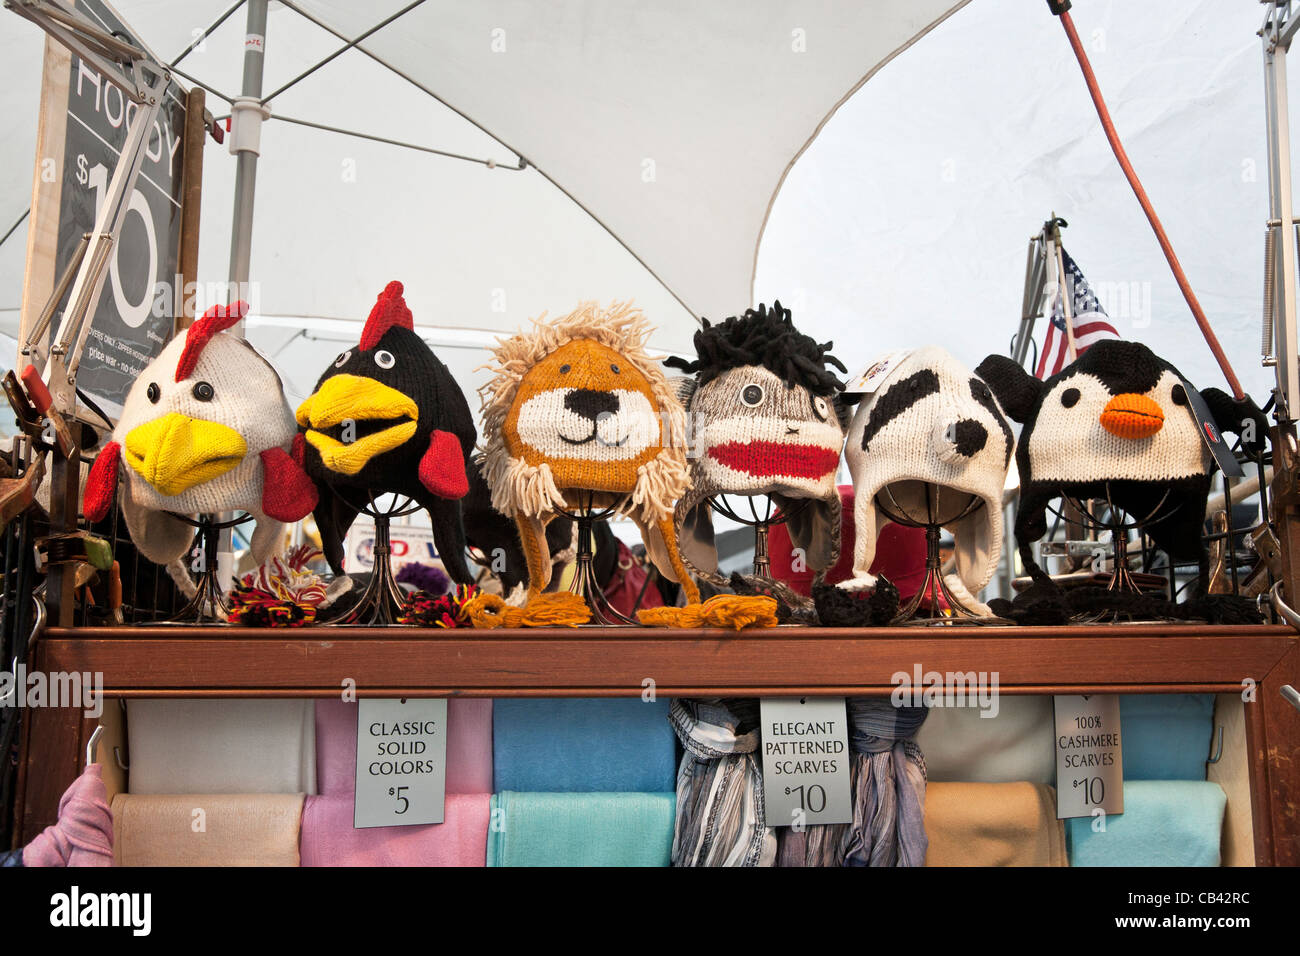 colorful anthropomorphic novelty winter cap caps displayed for sale on street vendors cart Fifth Avenue New York - Stock Image